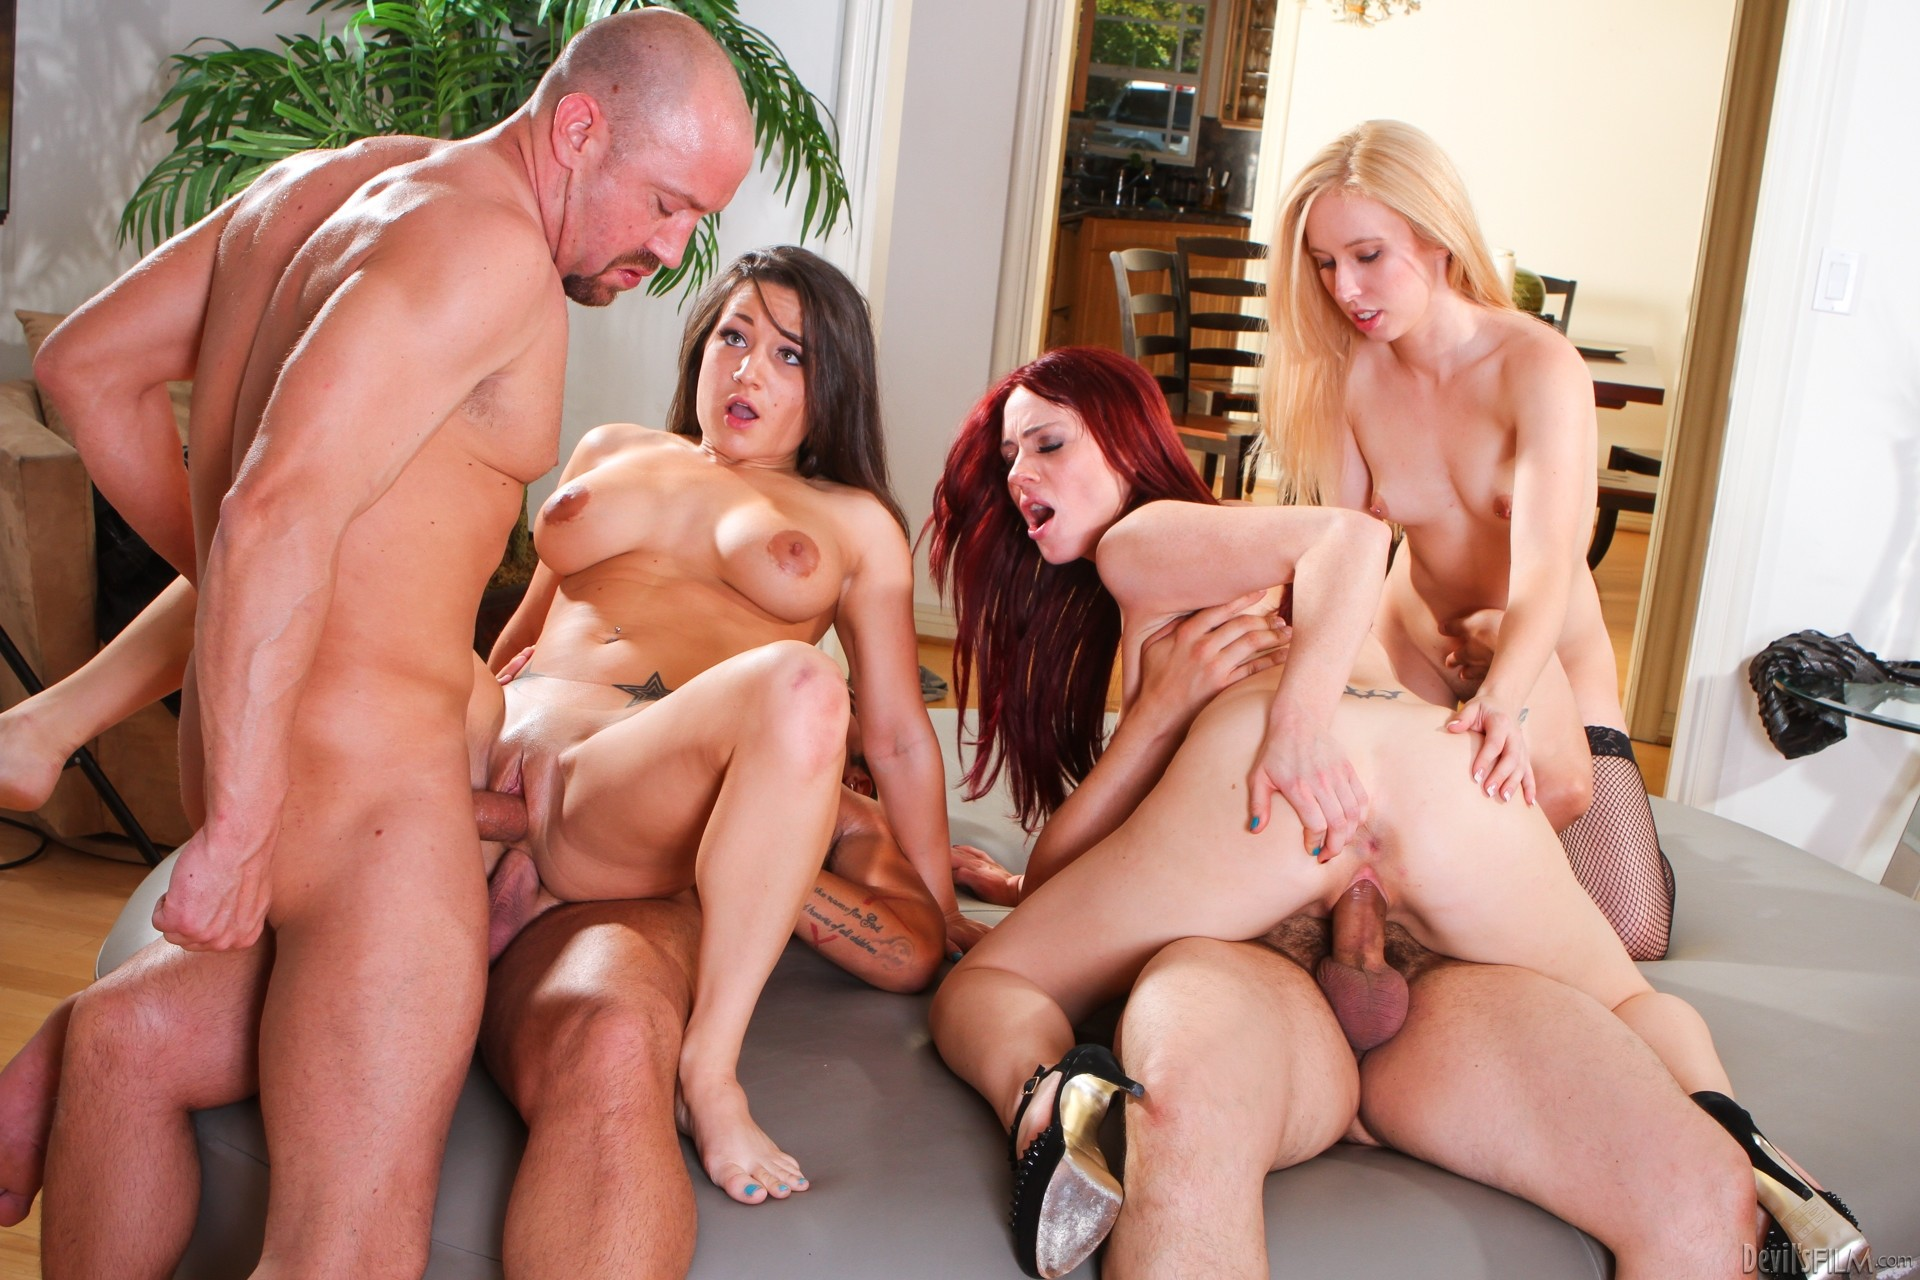 Hot group sex hard porn